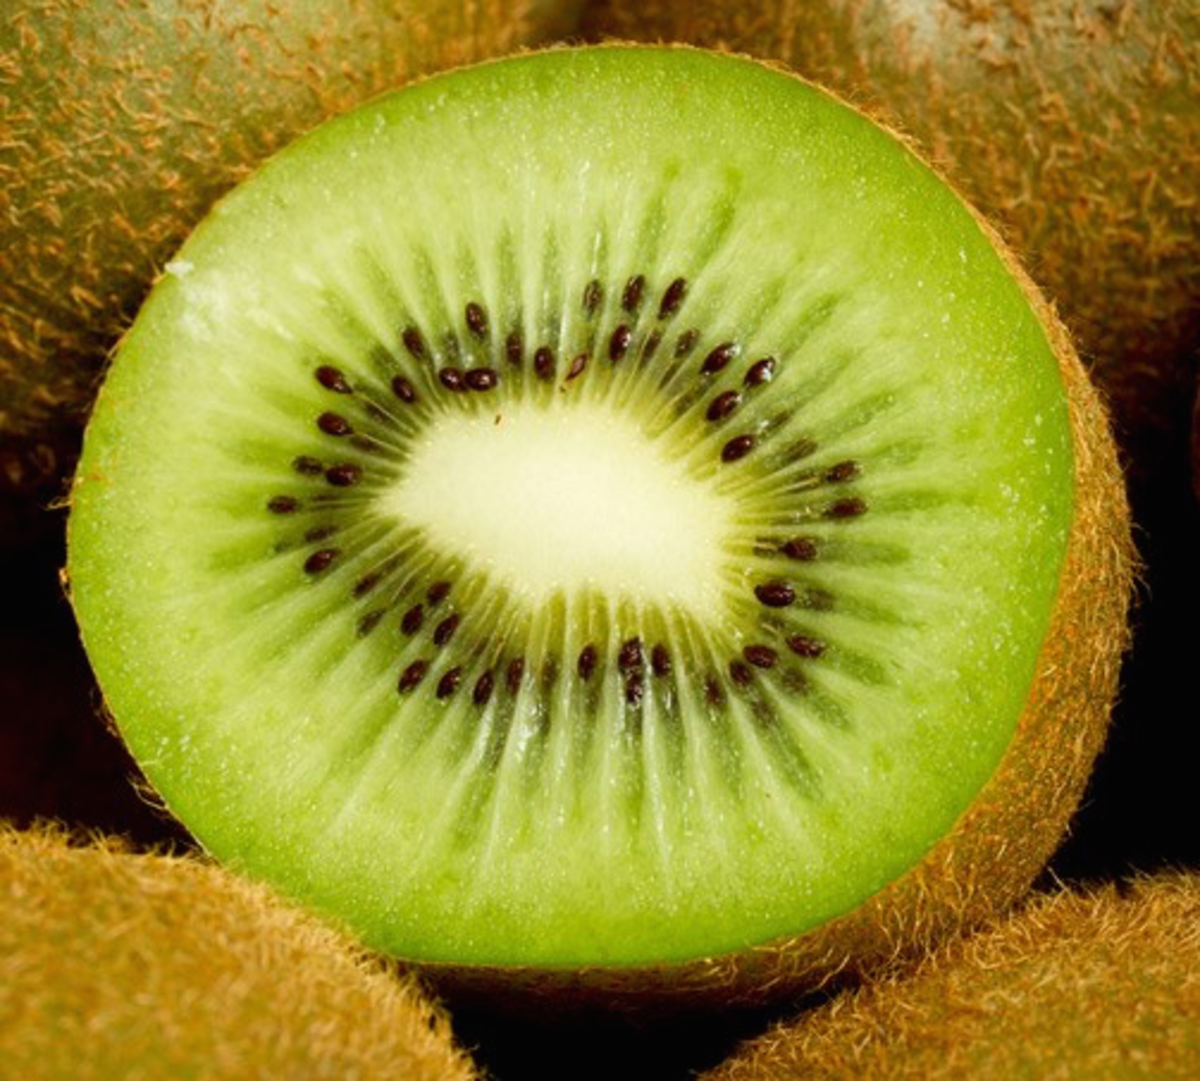 Kiwi fruit may be delicious, but the third-party flight booker of the same name is rotten.